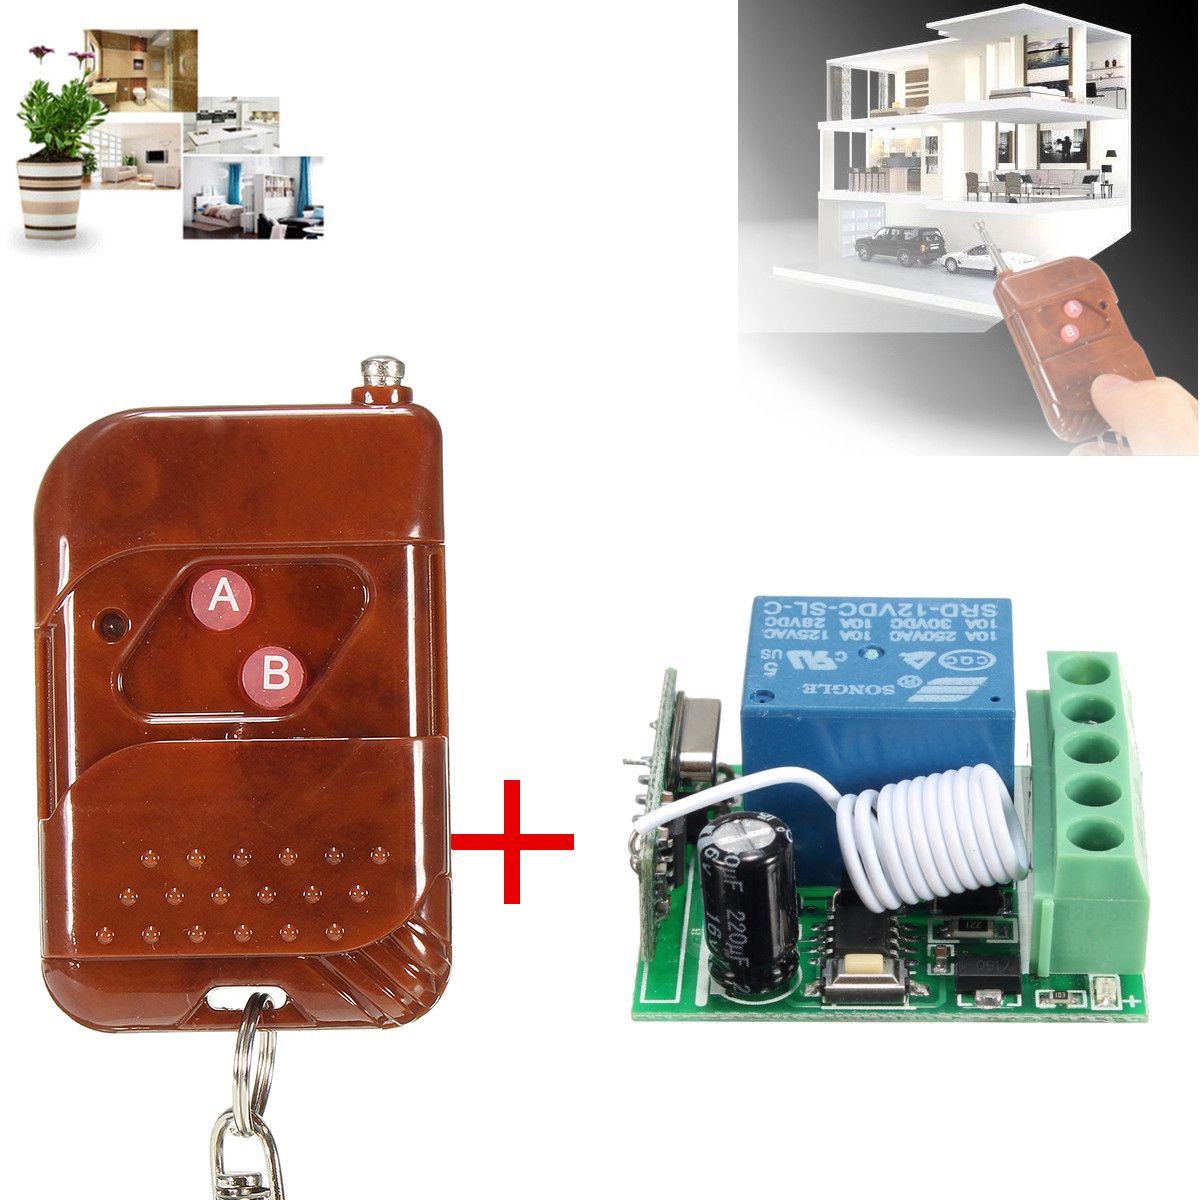 DC 12V 10A 1CH 433MHz Relay Wireless RF Remote Control Switch Receiver With Transmitter